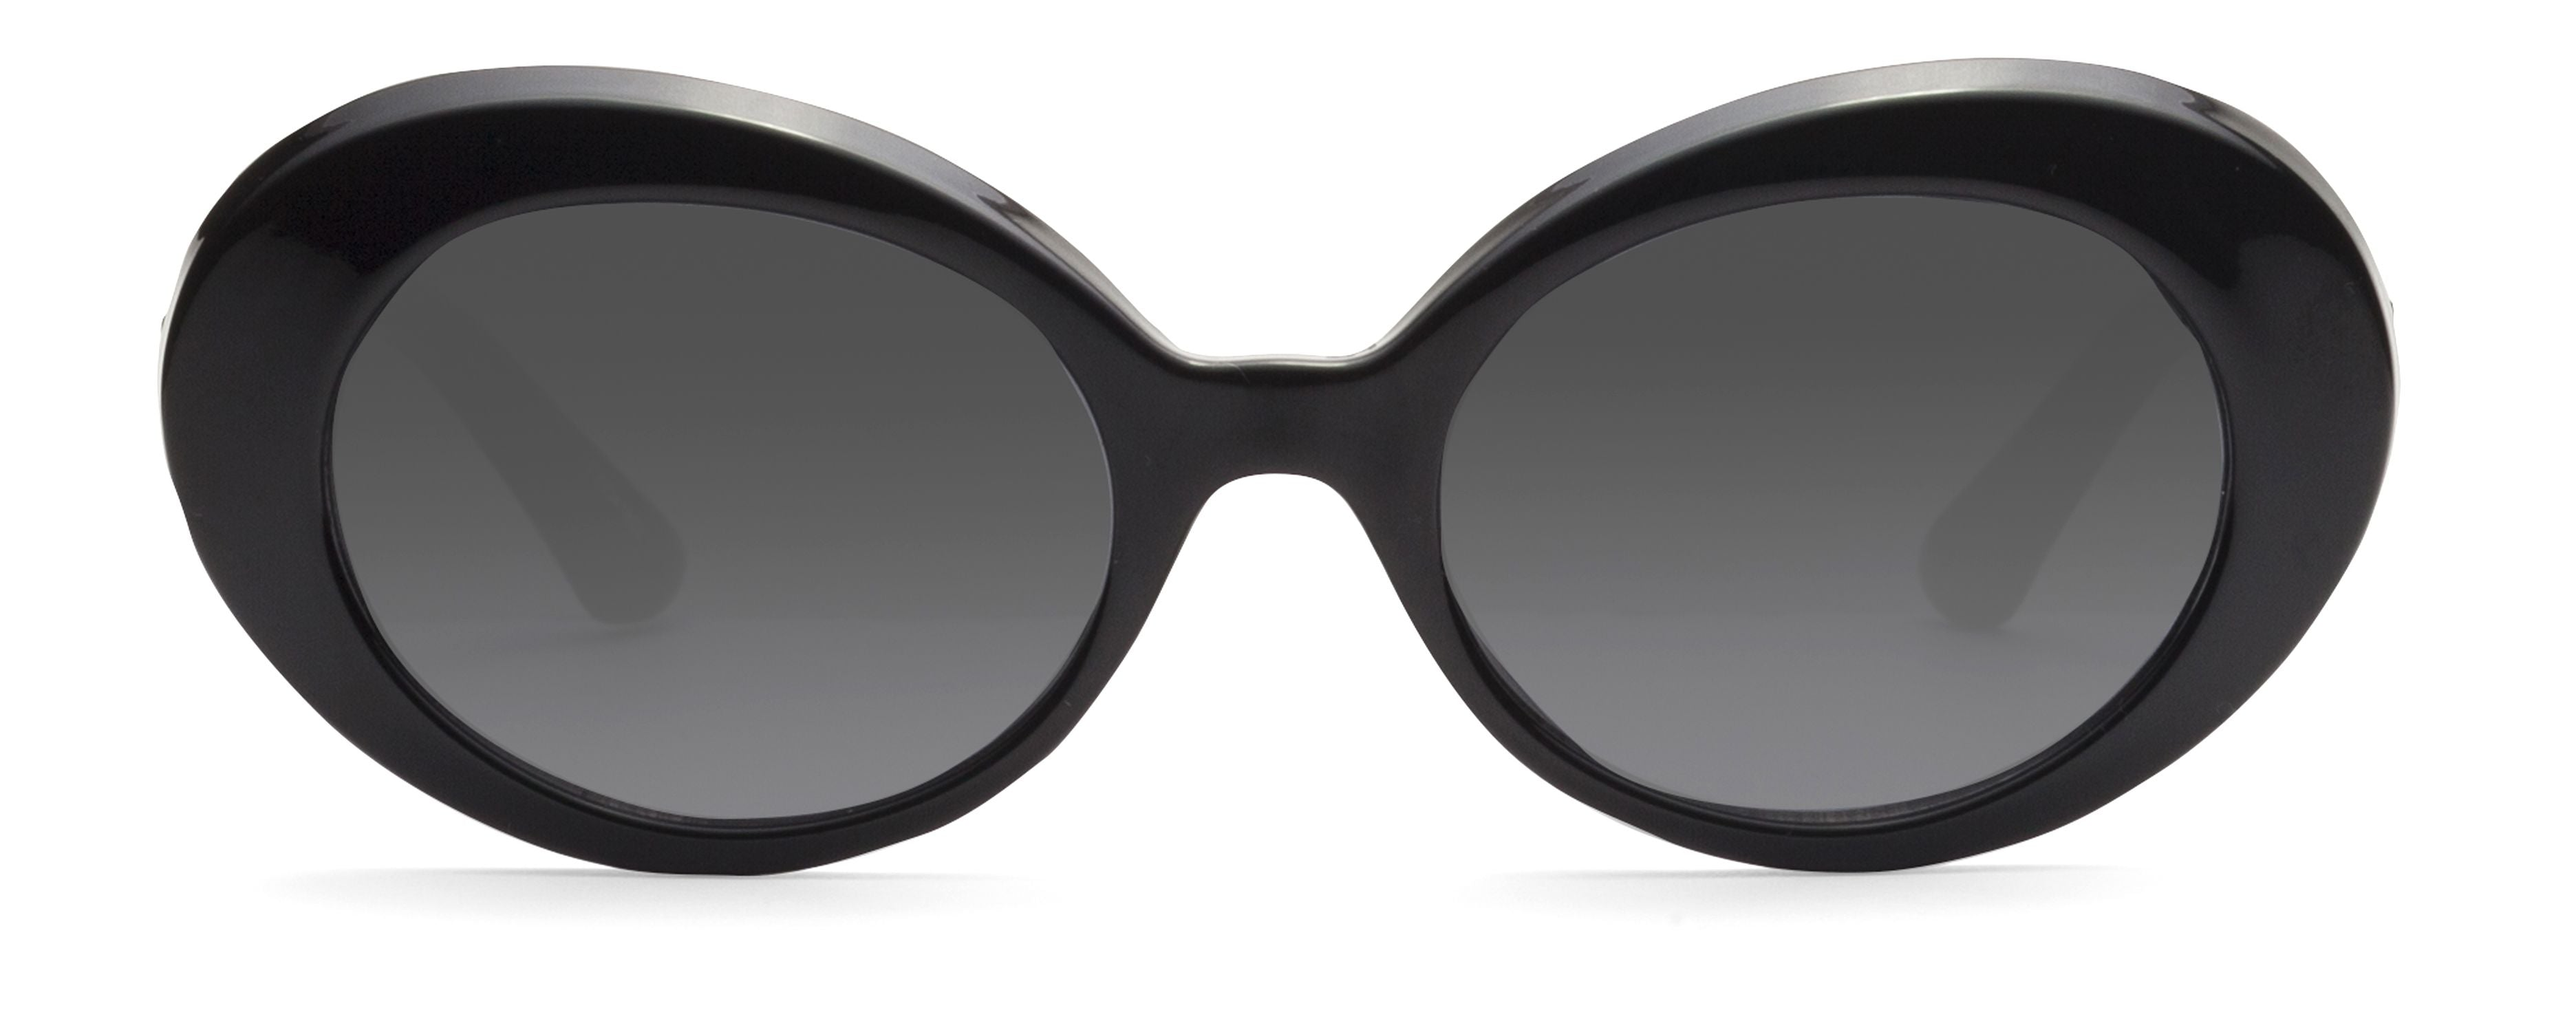 WOWZA Black JUNiA Kids Sunglasses